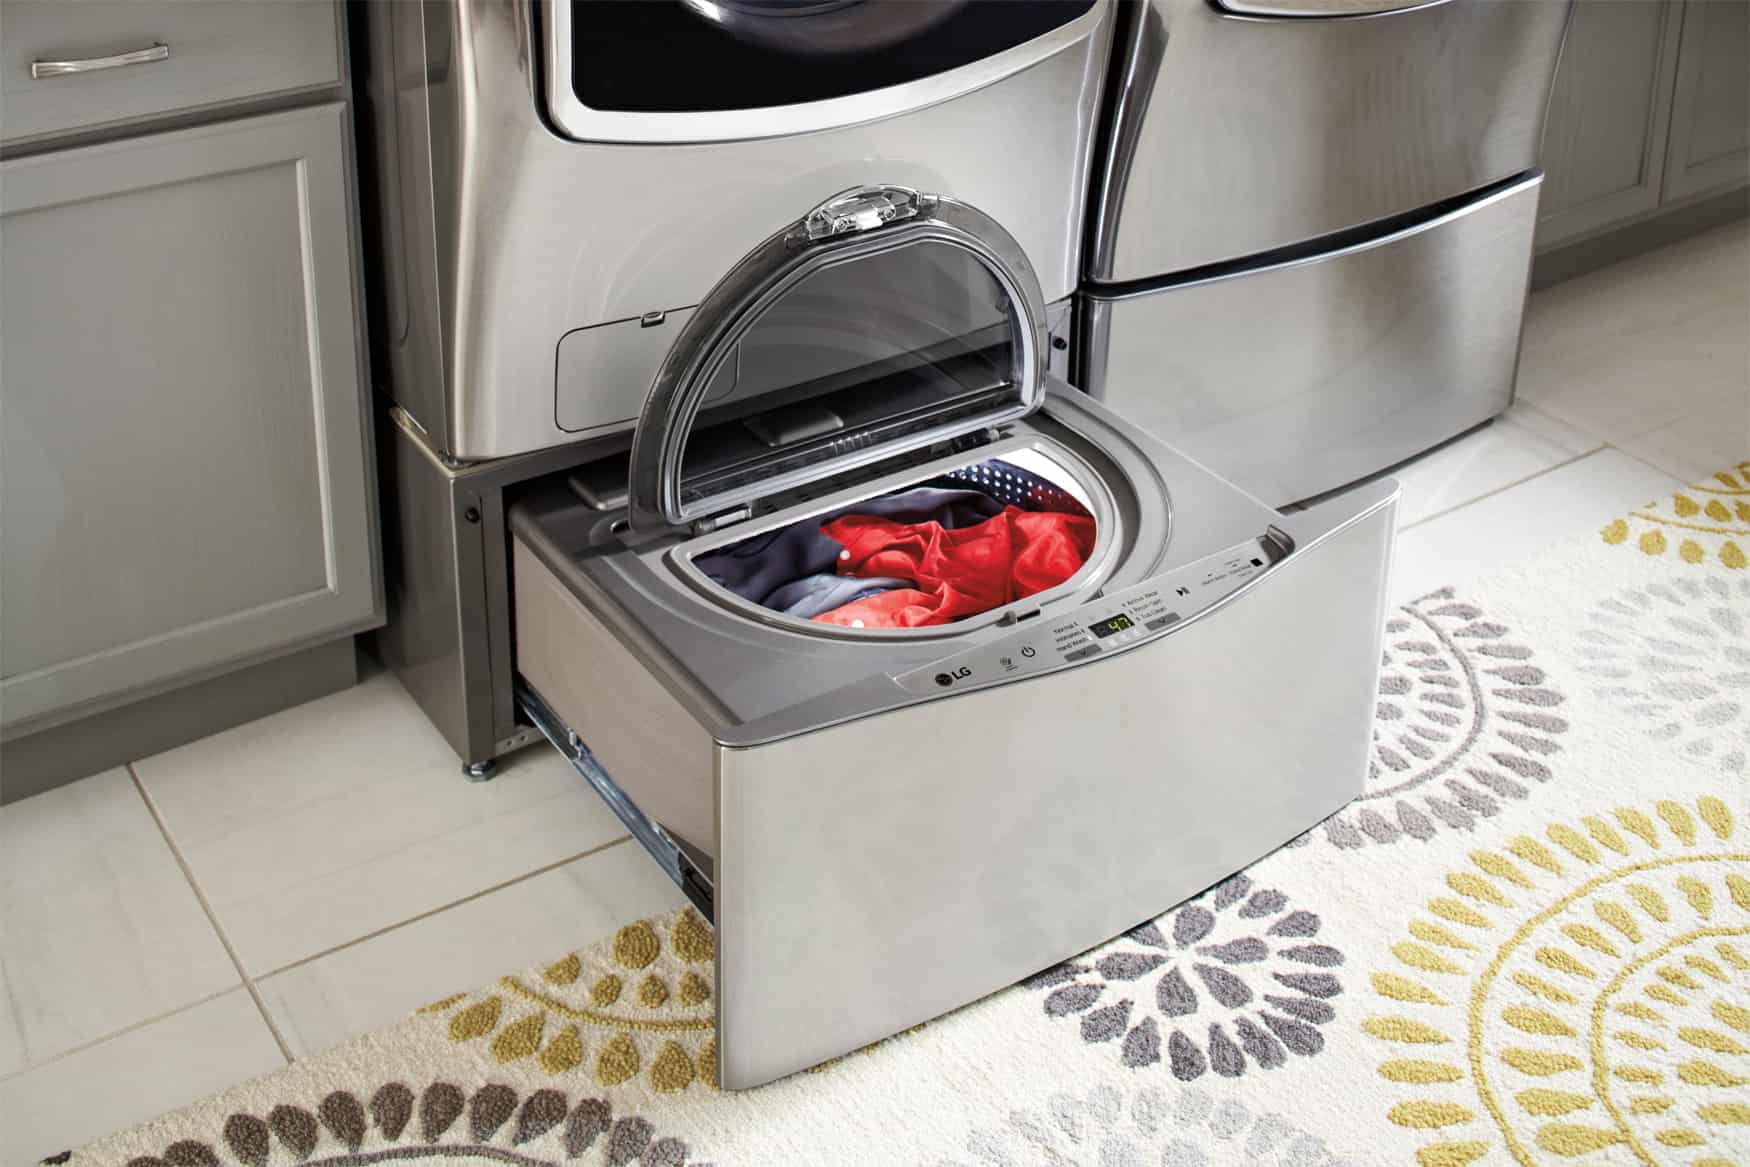 LG's Front Load Laundry Saves Time & Money With Two Loads at Once